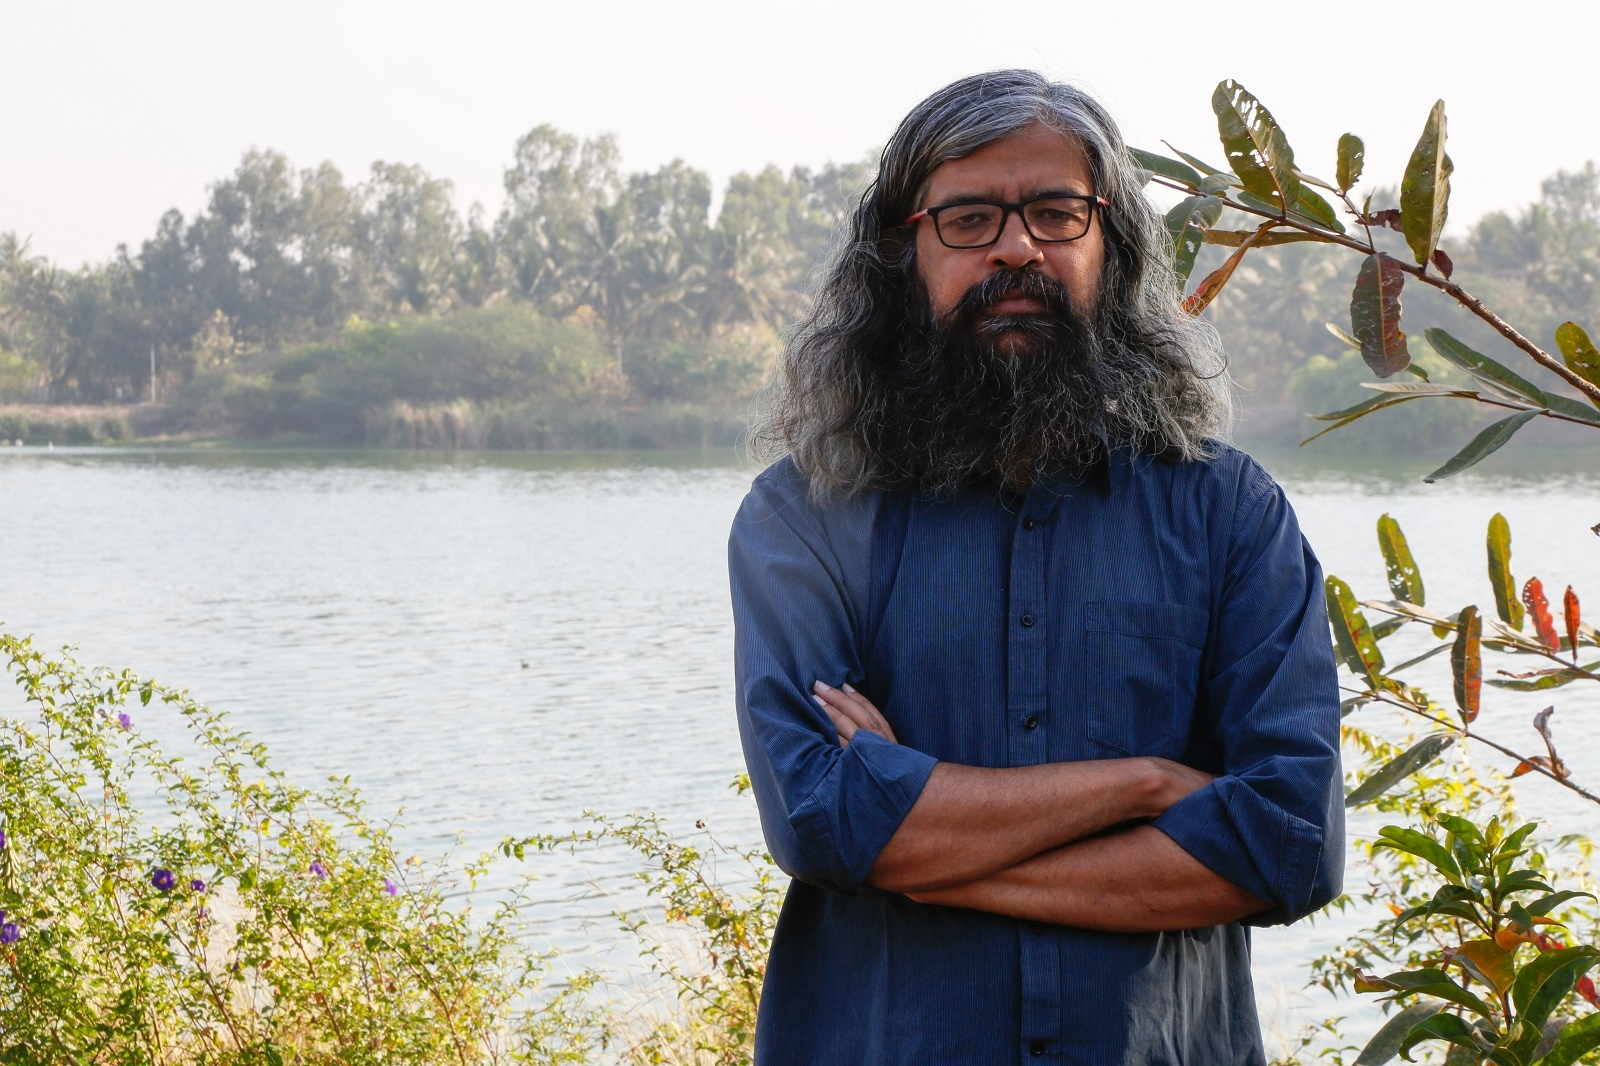 Vishwanath Srikantaiah, a water conservation and urban planning expert, poses for a photo near Jakkur Lake in Bangalore, on March 15, 2019. Thomson Reuters Foundation/Annie Banerji